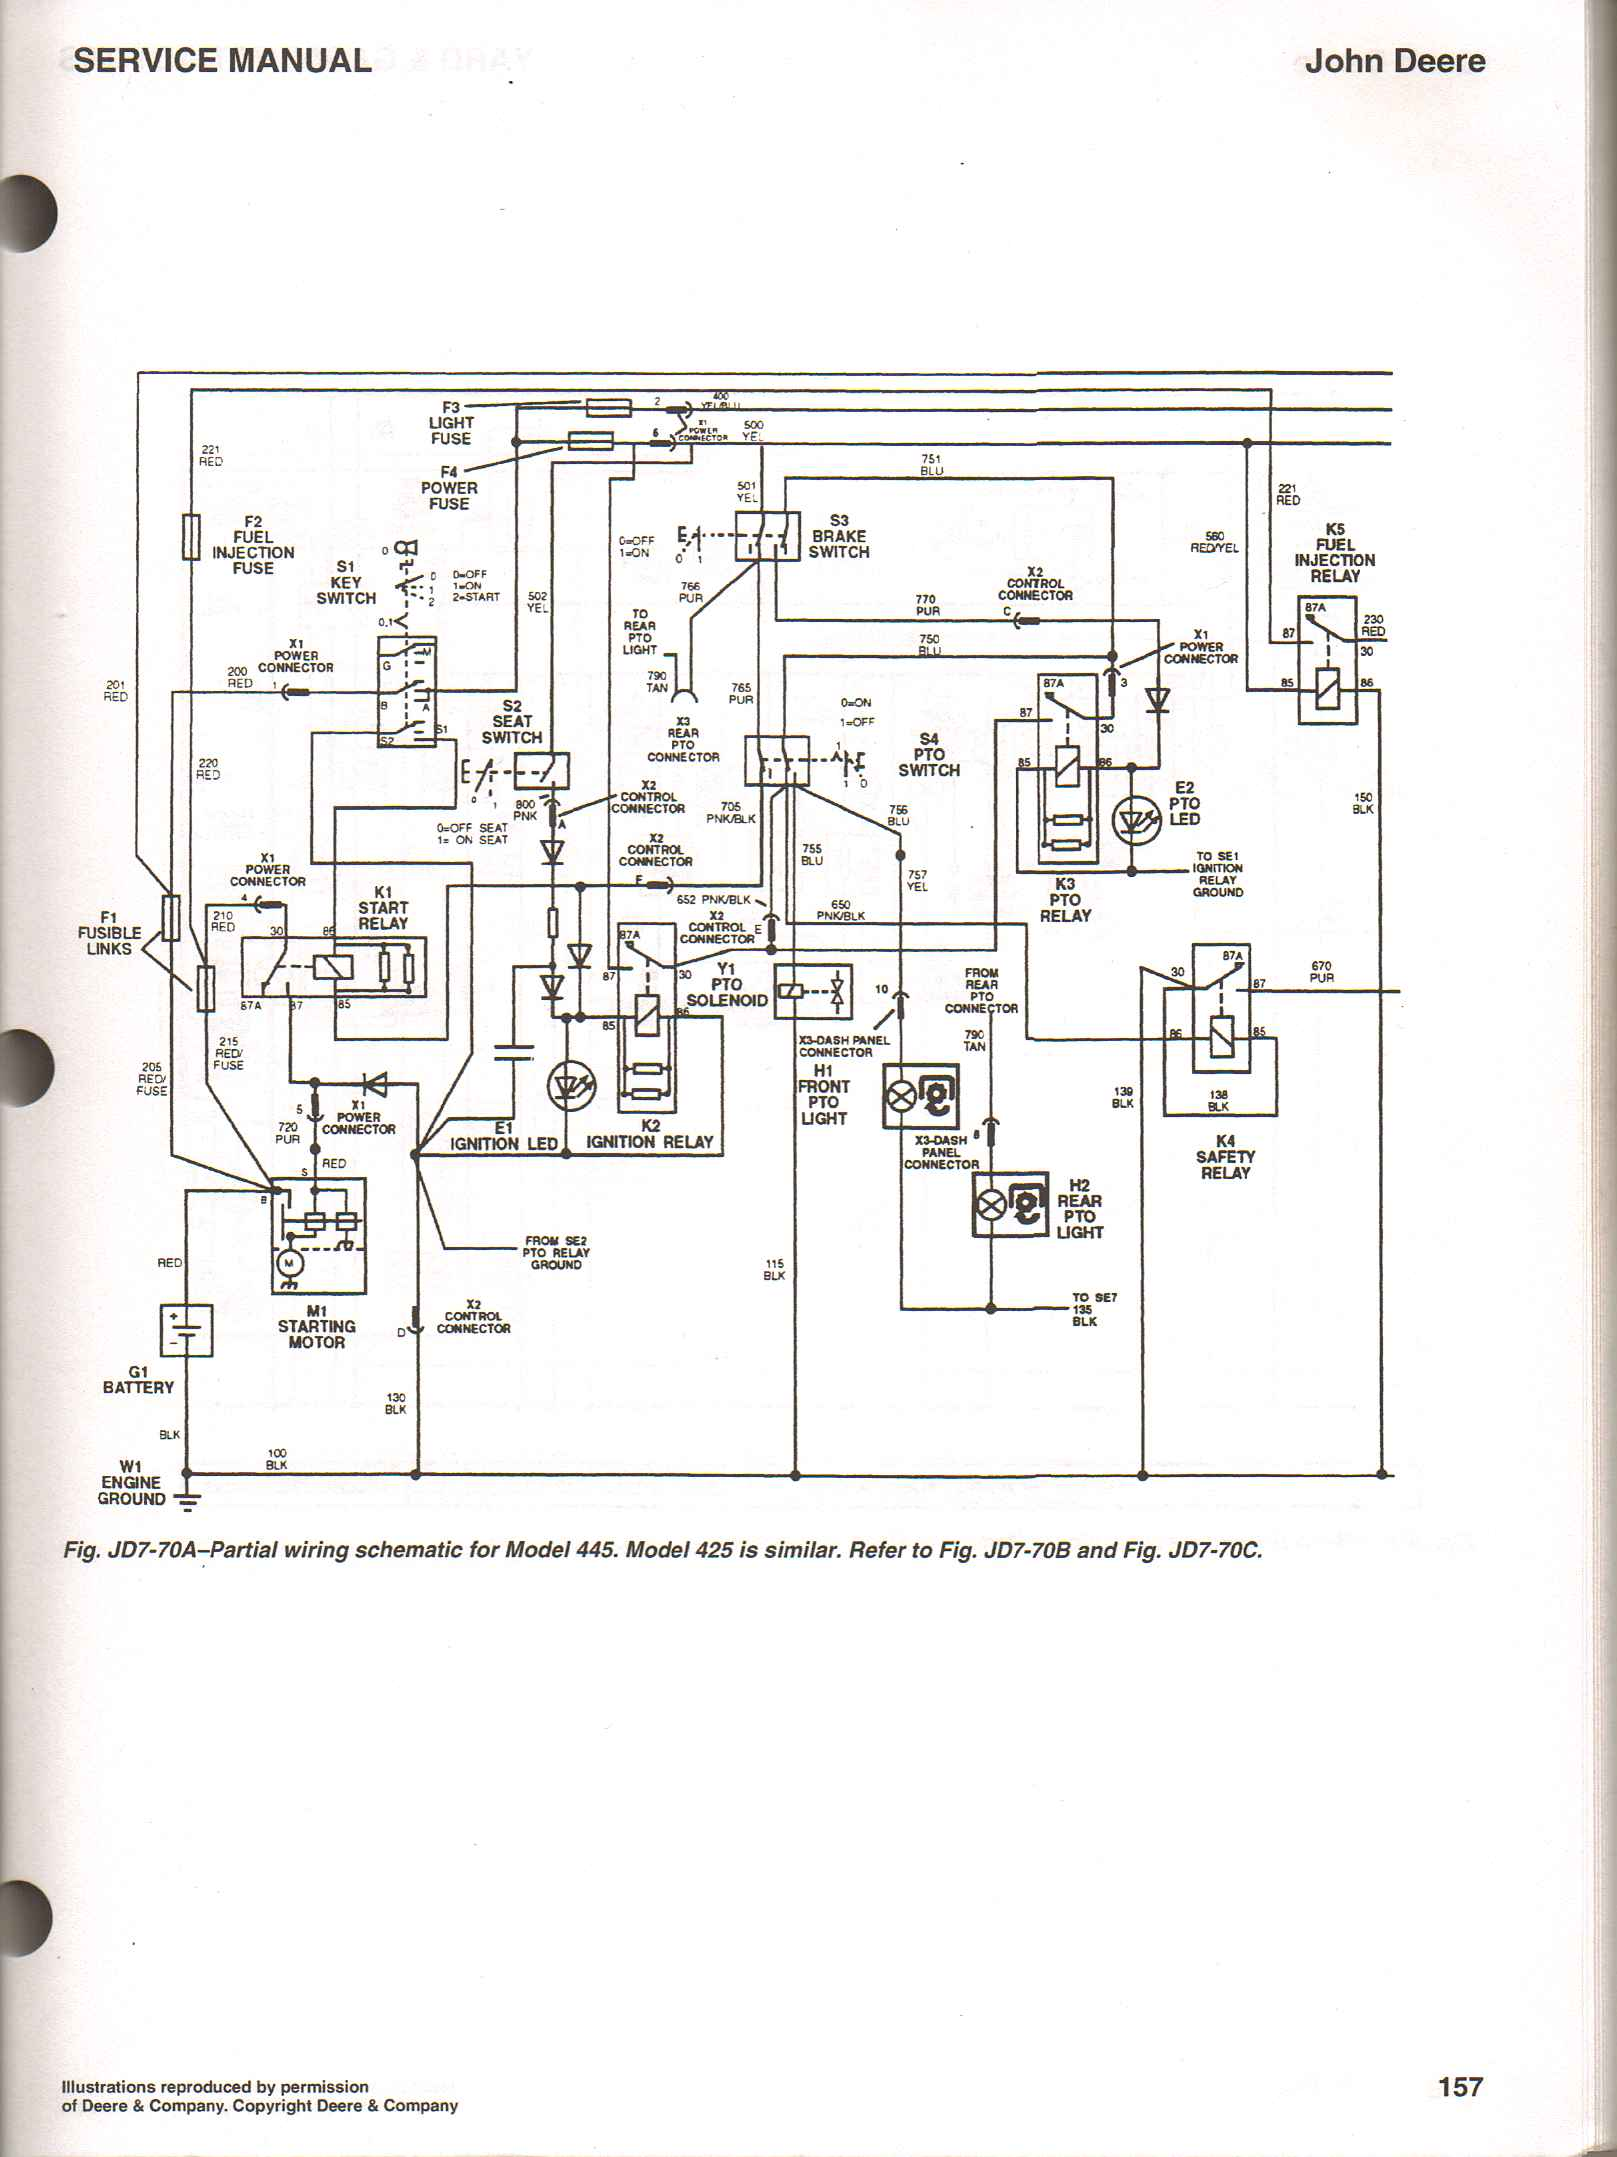 lt155 john deere ignition wiring diagram wiring diagram g9  wiring diagram john deere lt155 lawn tractor free download wiring john deere lt155 fuel system john